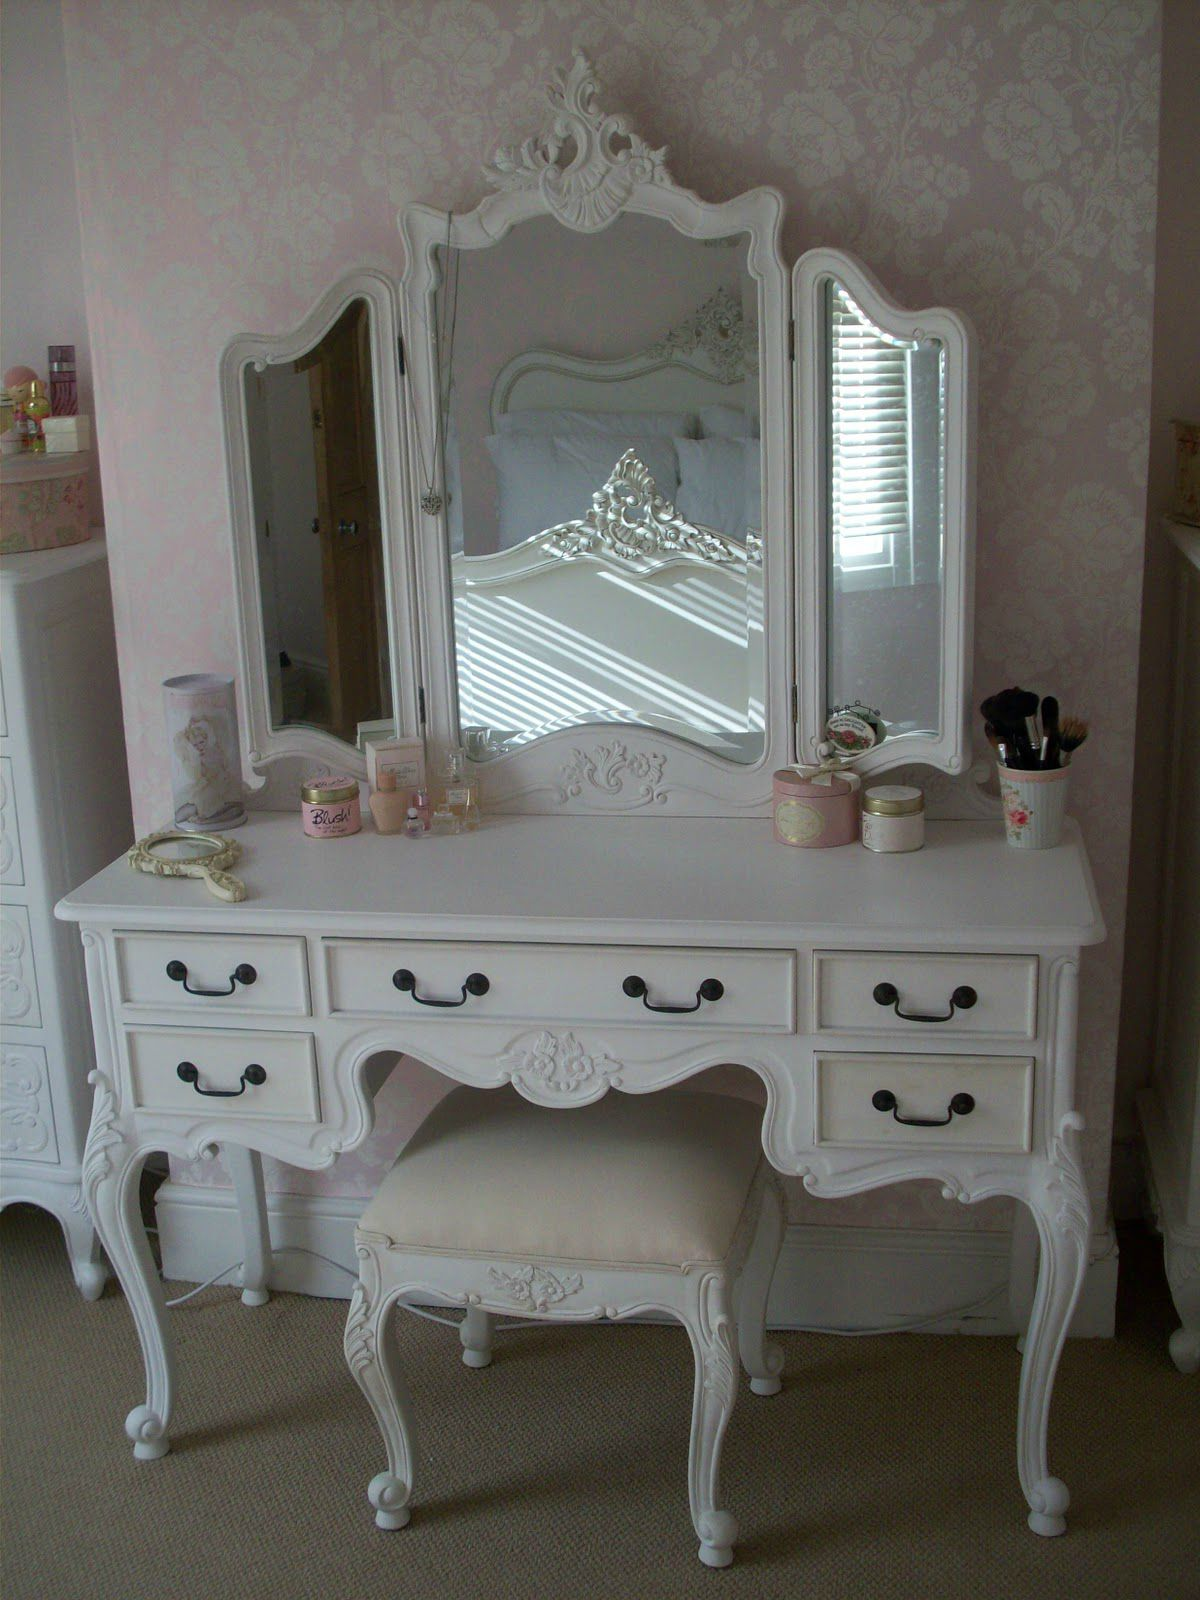 coiffeuse so chic romantic shabby chic. Black Bedroom Furniture Sets. Home Design Ideas